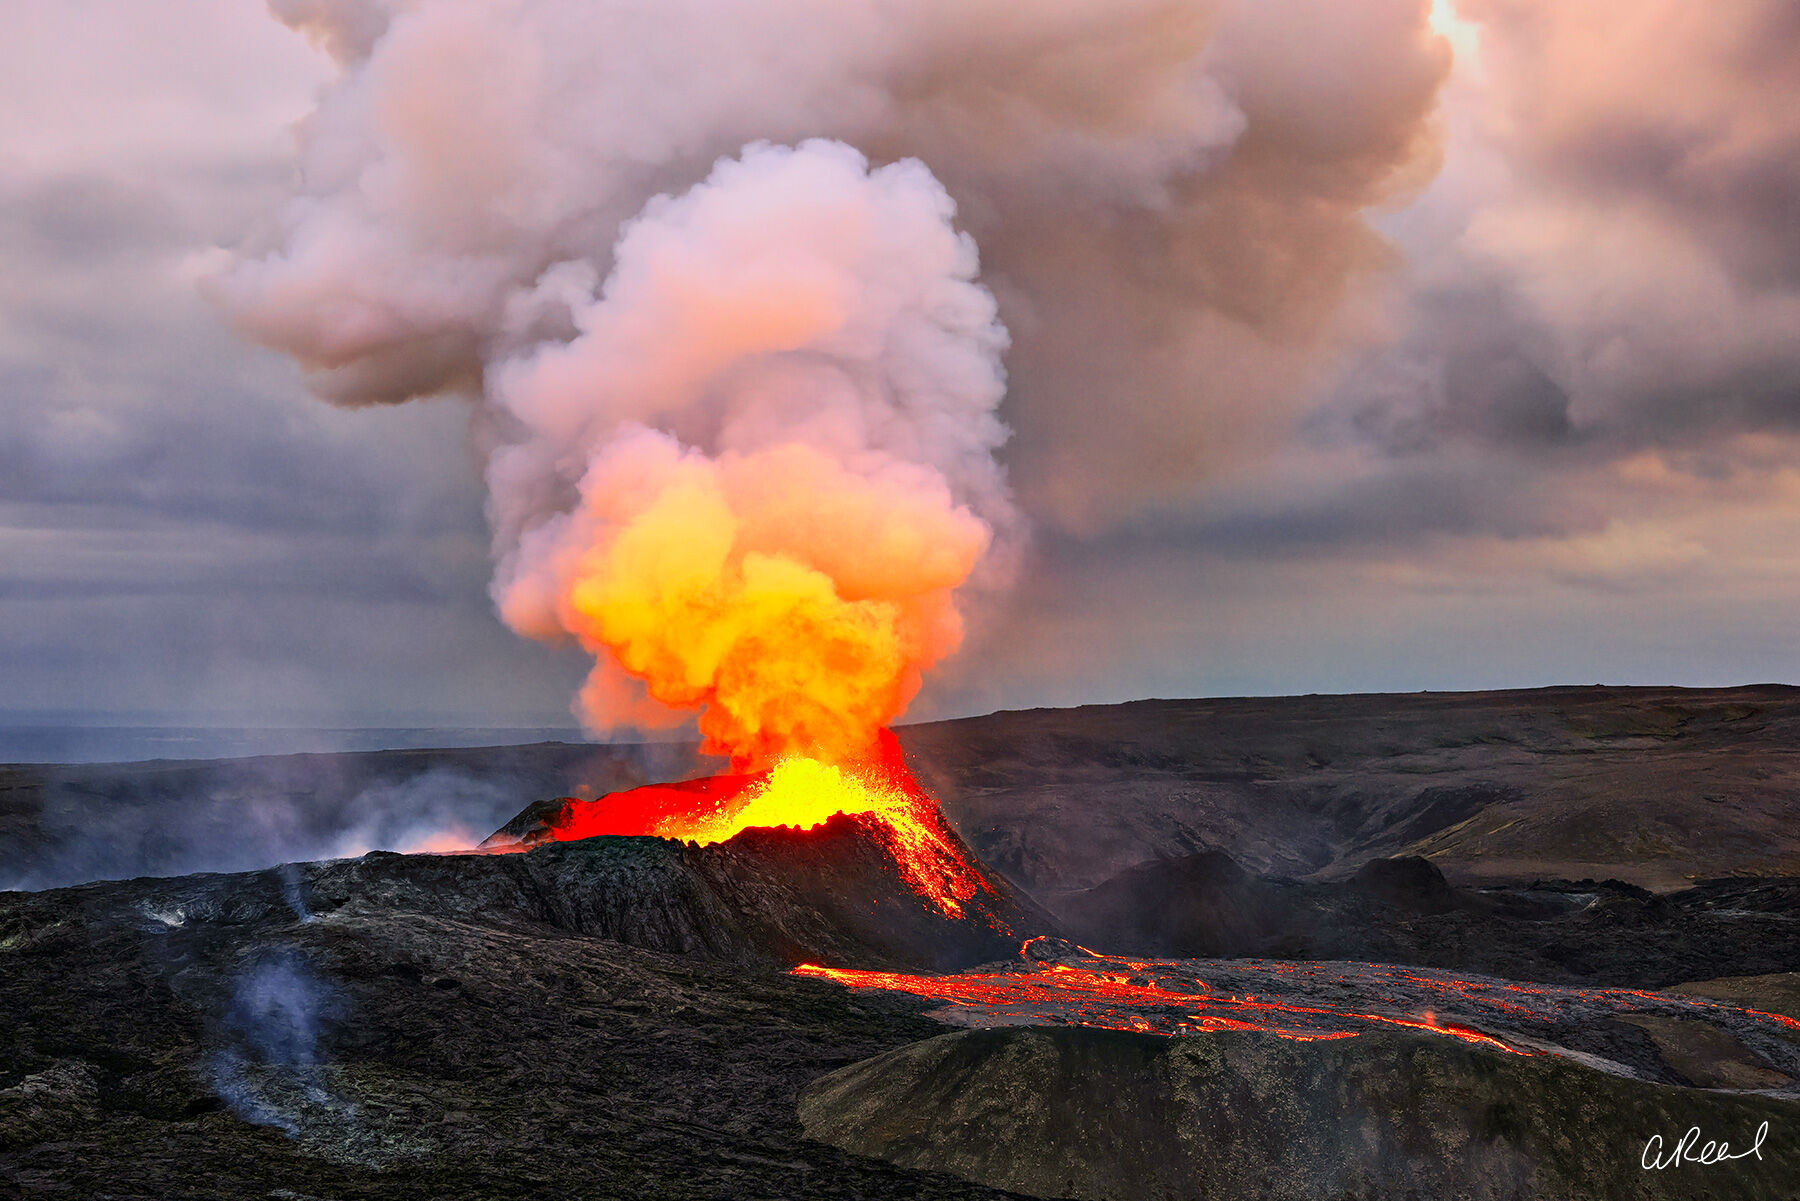 Transform your space with Aaron Reed's limited edition photography print, Born From Fire, from his Iceland Nature Photography...